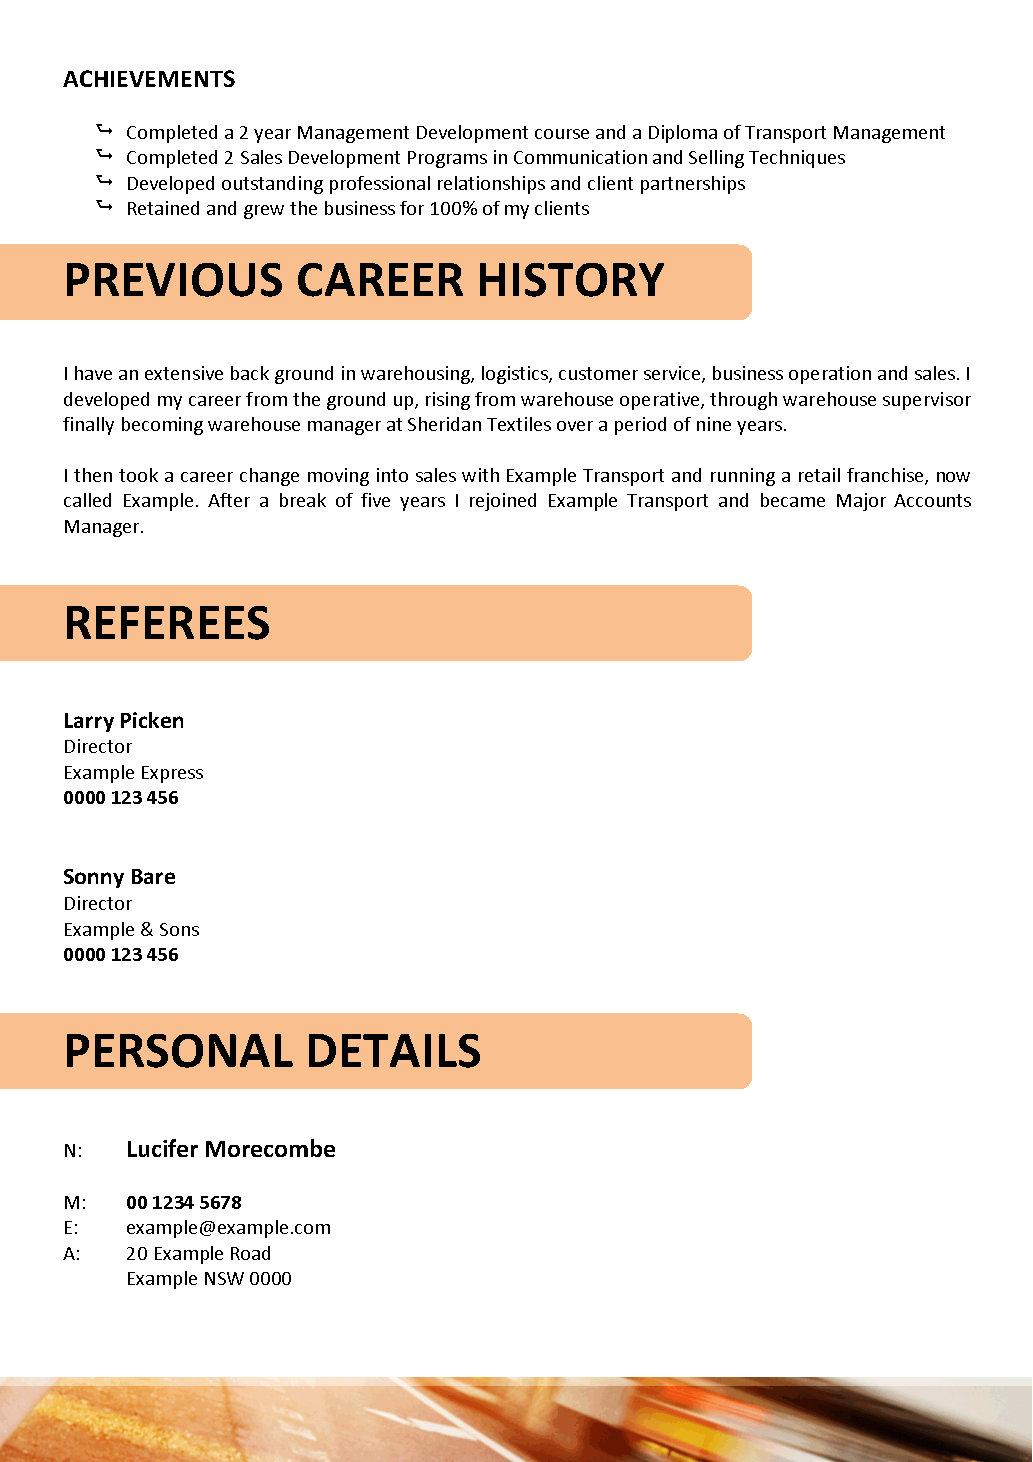 Truck Driver Resume Template We Can Help With Professional Resume Writing Resume